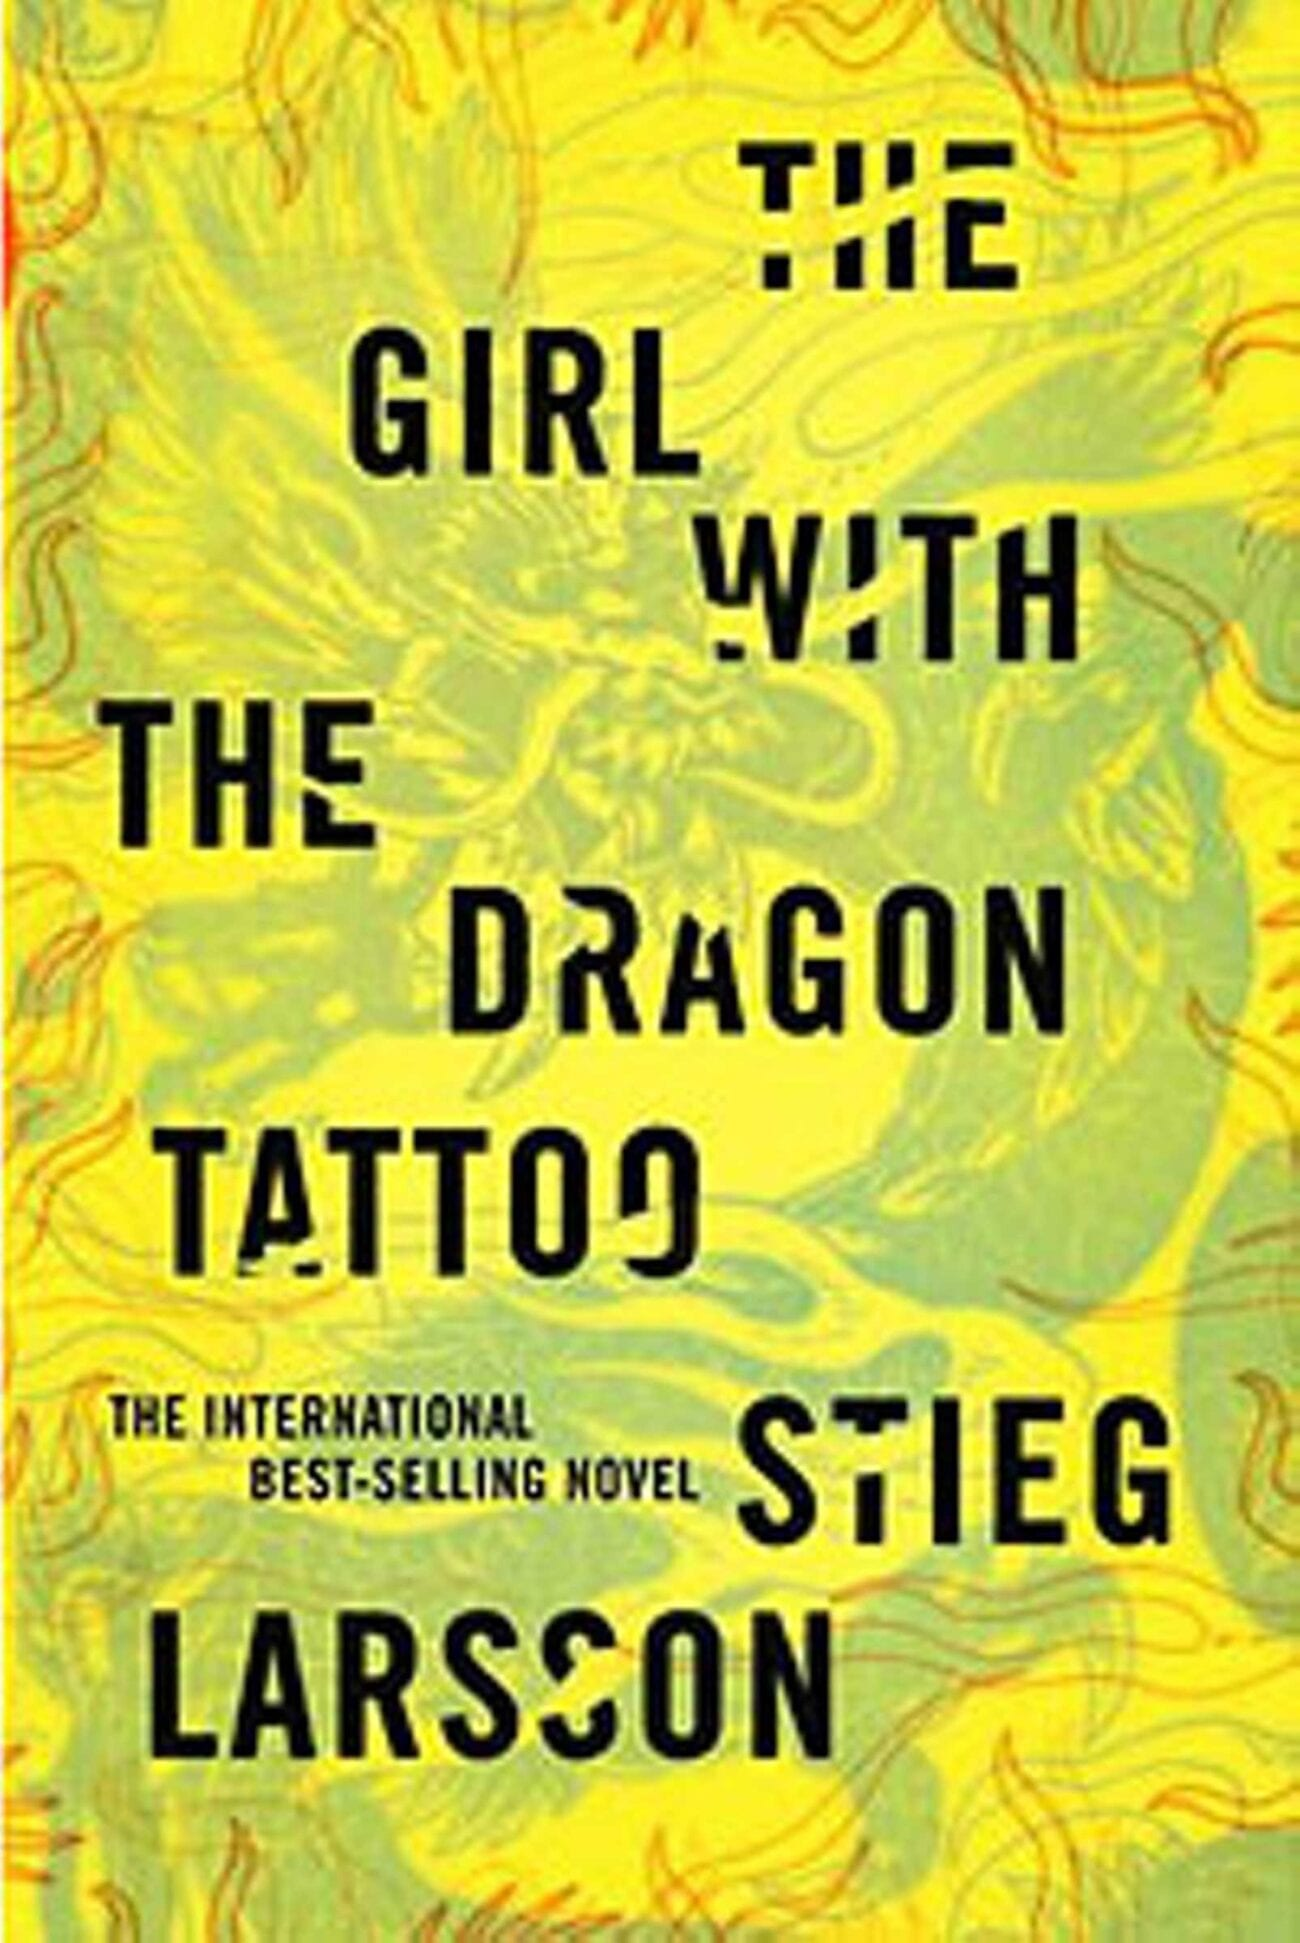 It's been nearly a decade since David Fincher's 'The Girl with the Dragon Tattoo' was released. Here's what we know about the series.